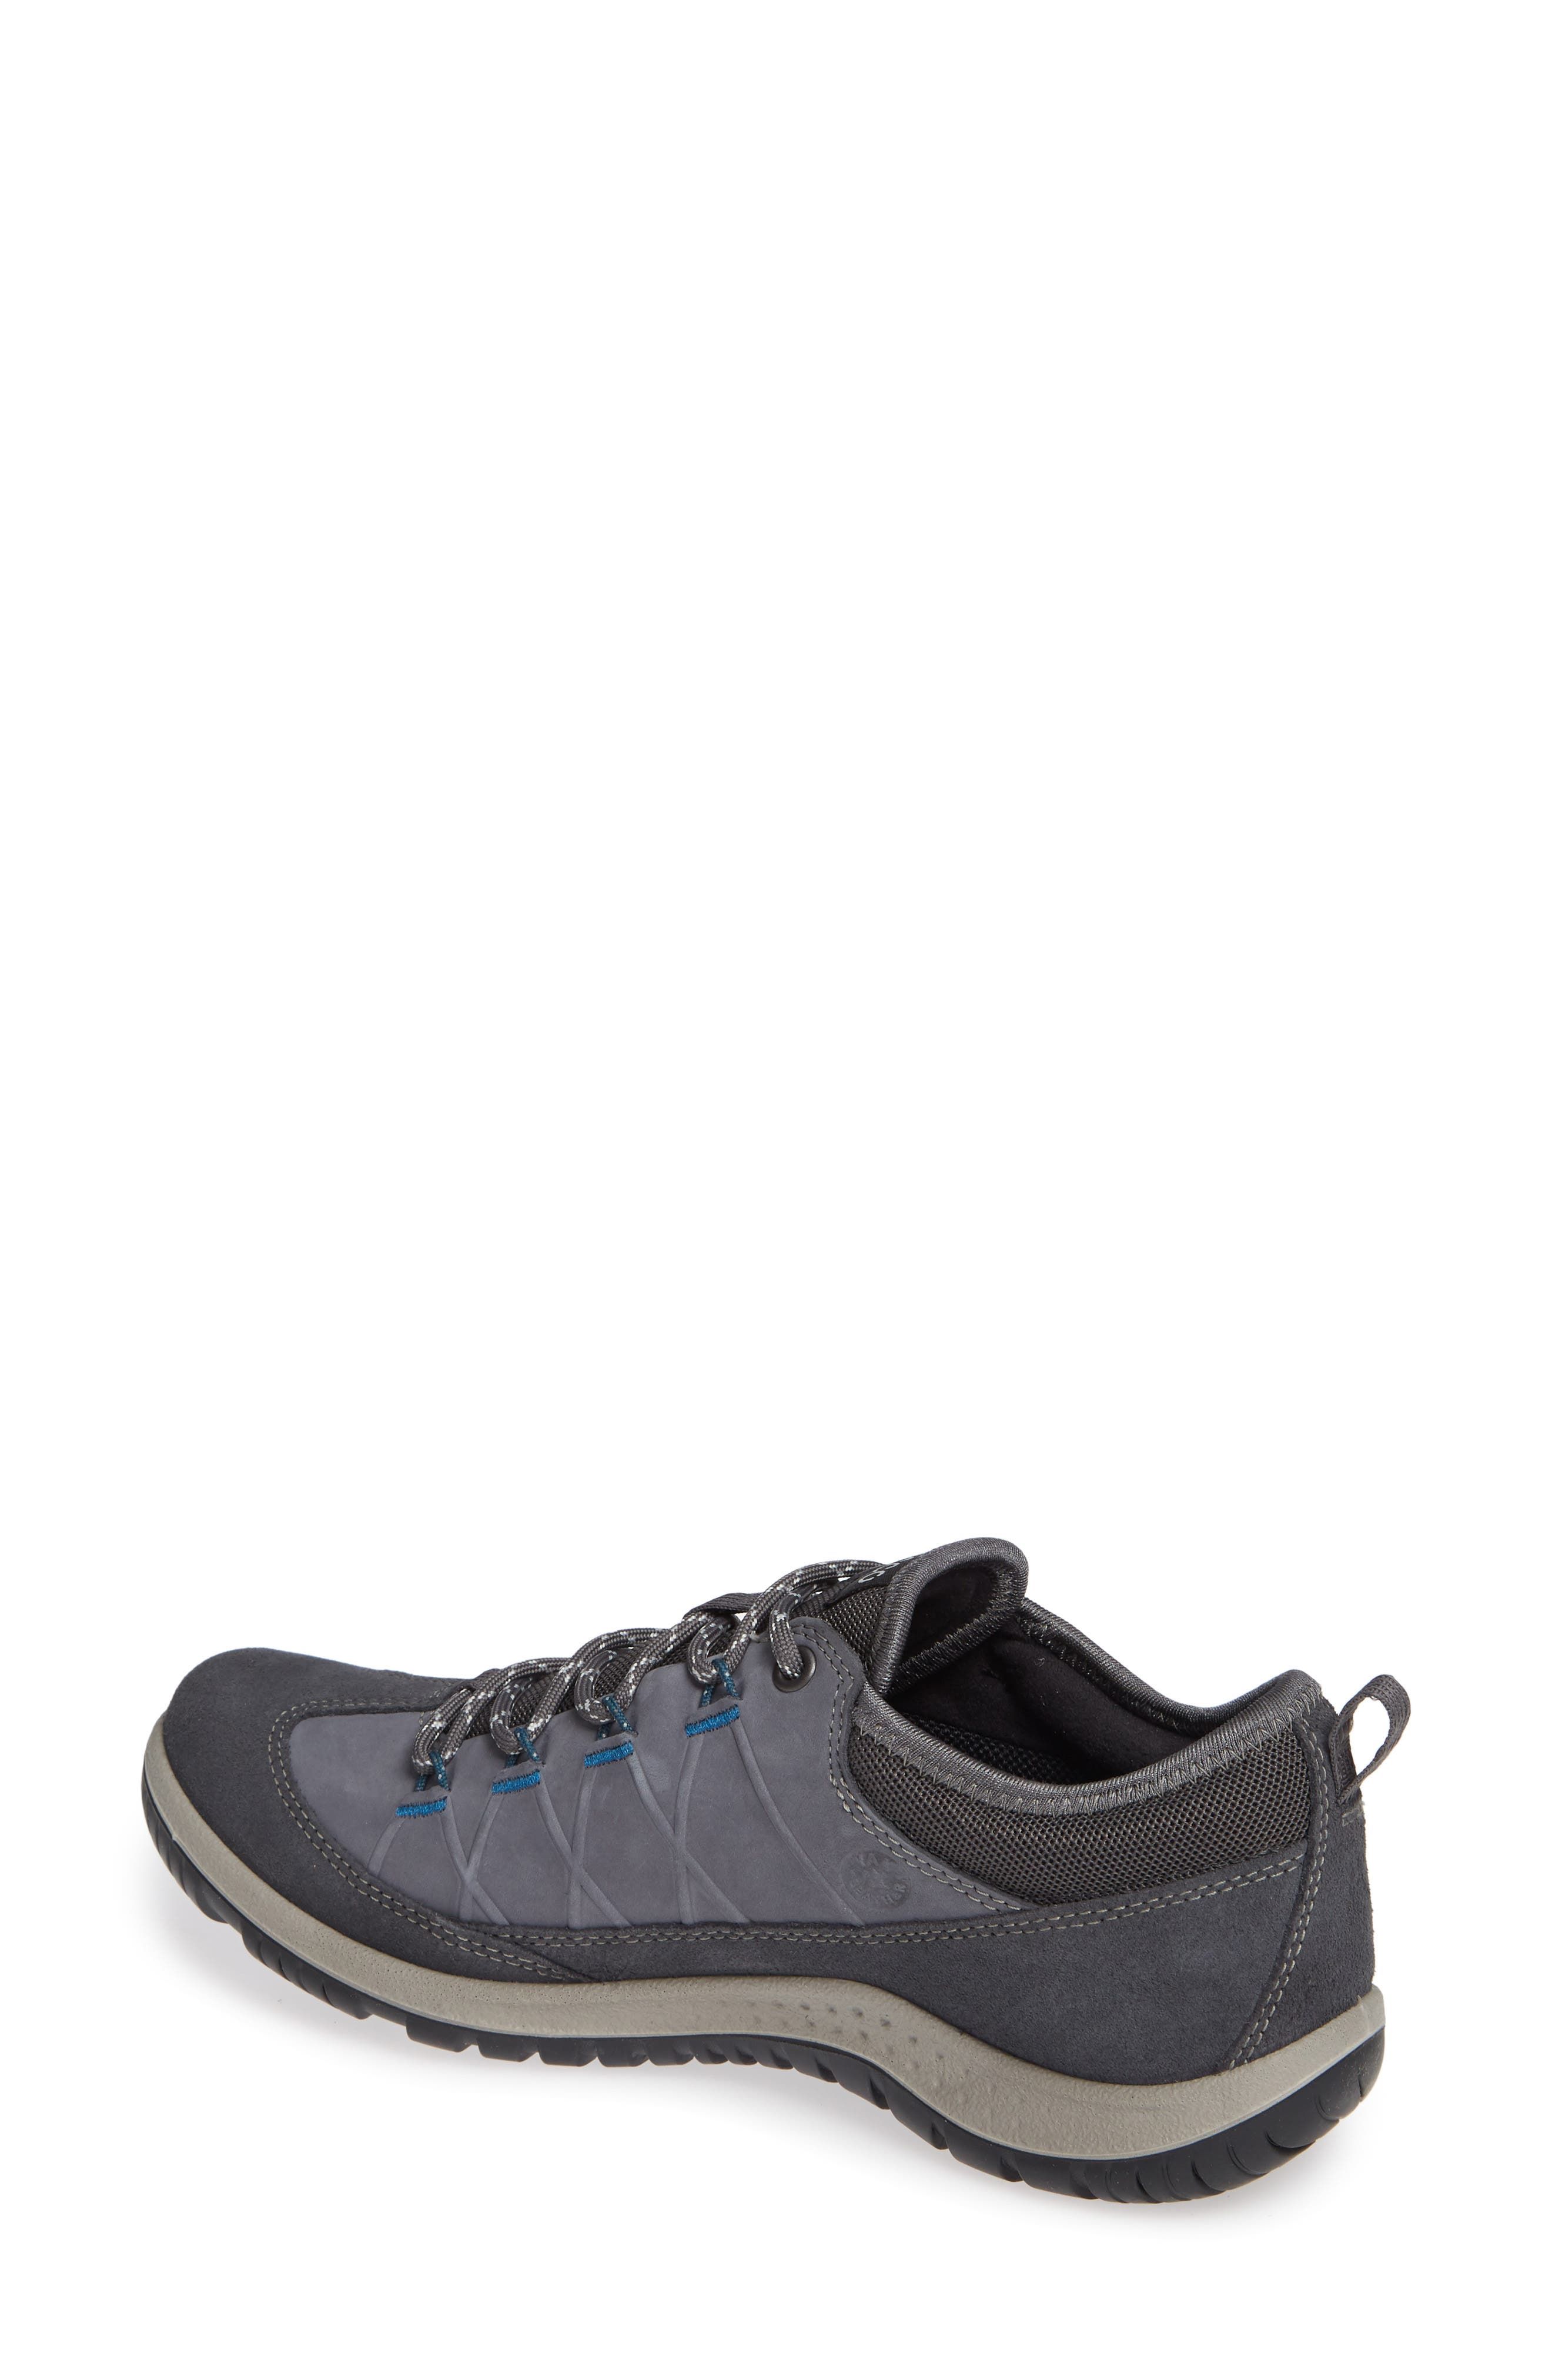 'Aspina GTX' Waterproof Sneaker,                             Alternate thumbnail 2, color,                             Magnet Nubuck Leather